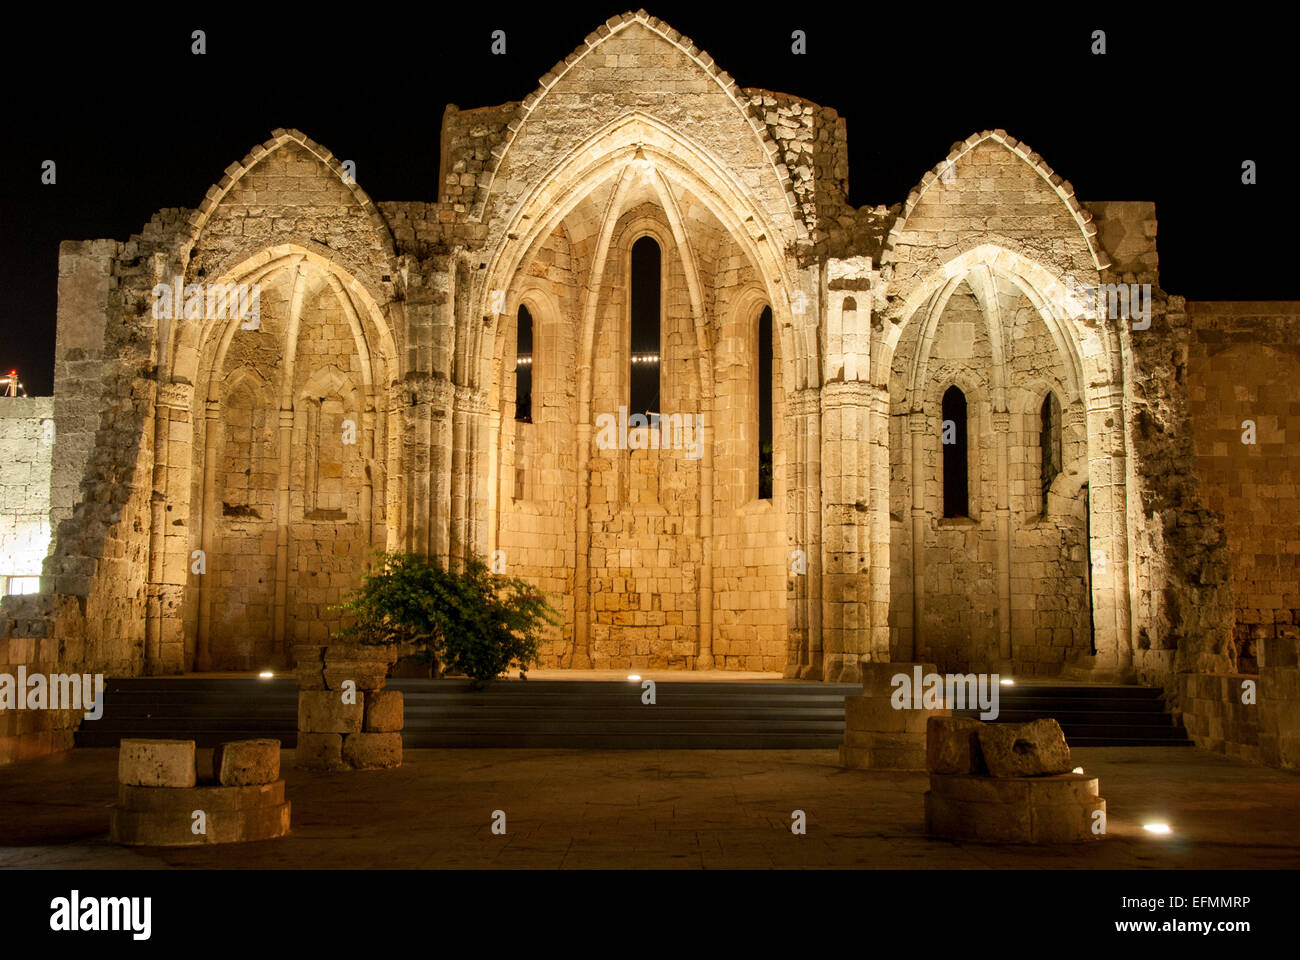 Rhodes' Night at the Old Cathedral - Stock Image